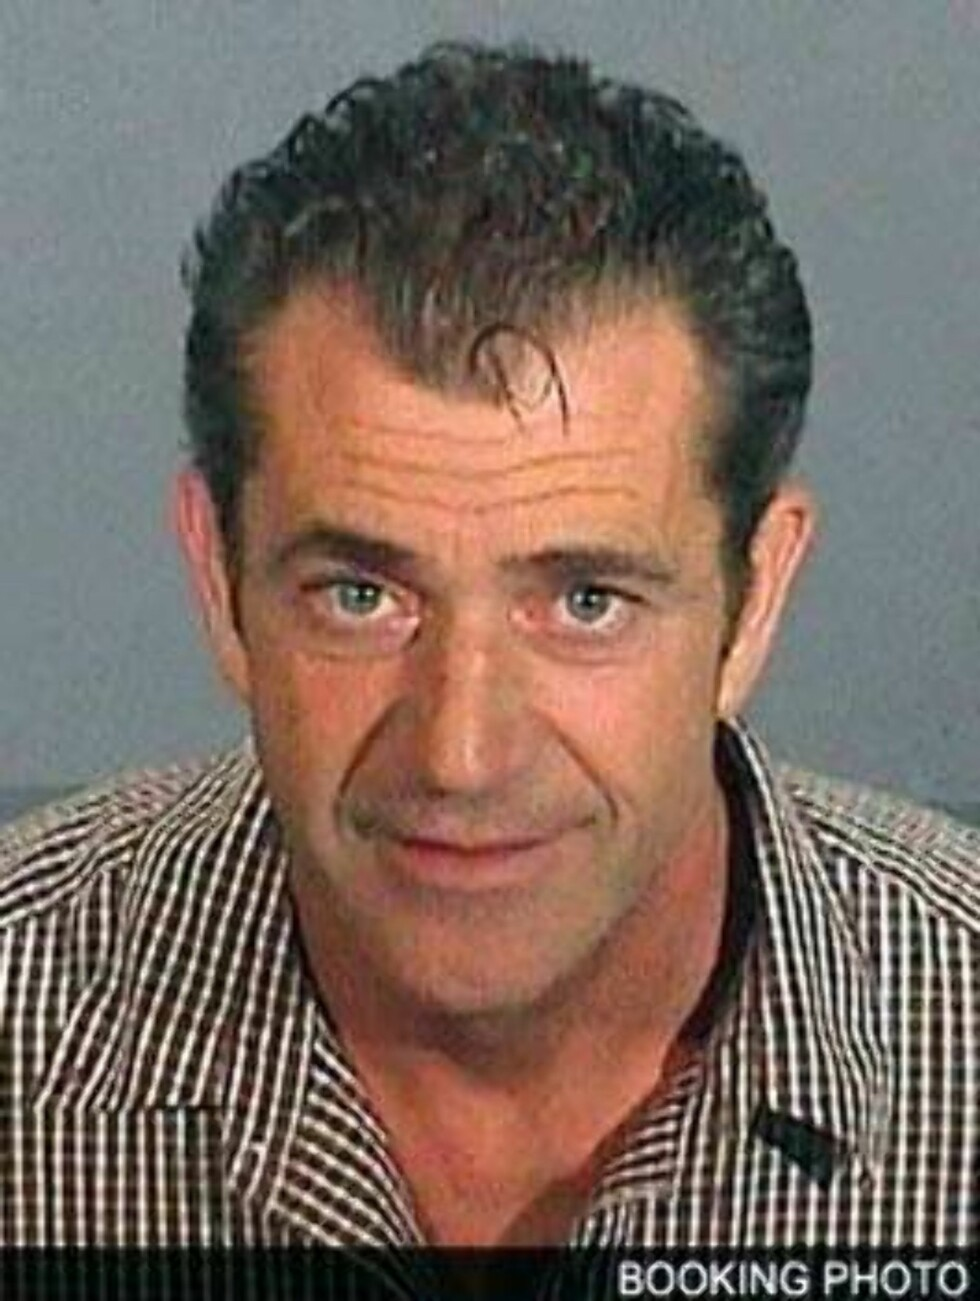 Mel Gibson looks good on his mug shot July 29, 2006 X17agency  / ALL OVER PRESS Foto: All Over Press